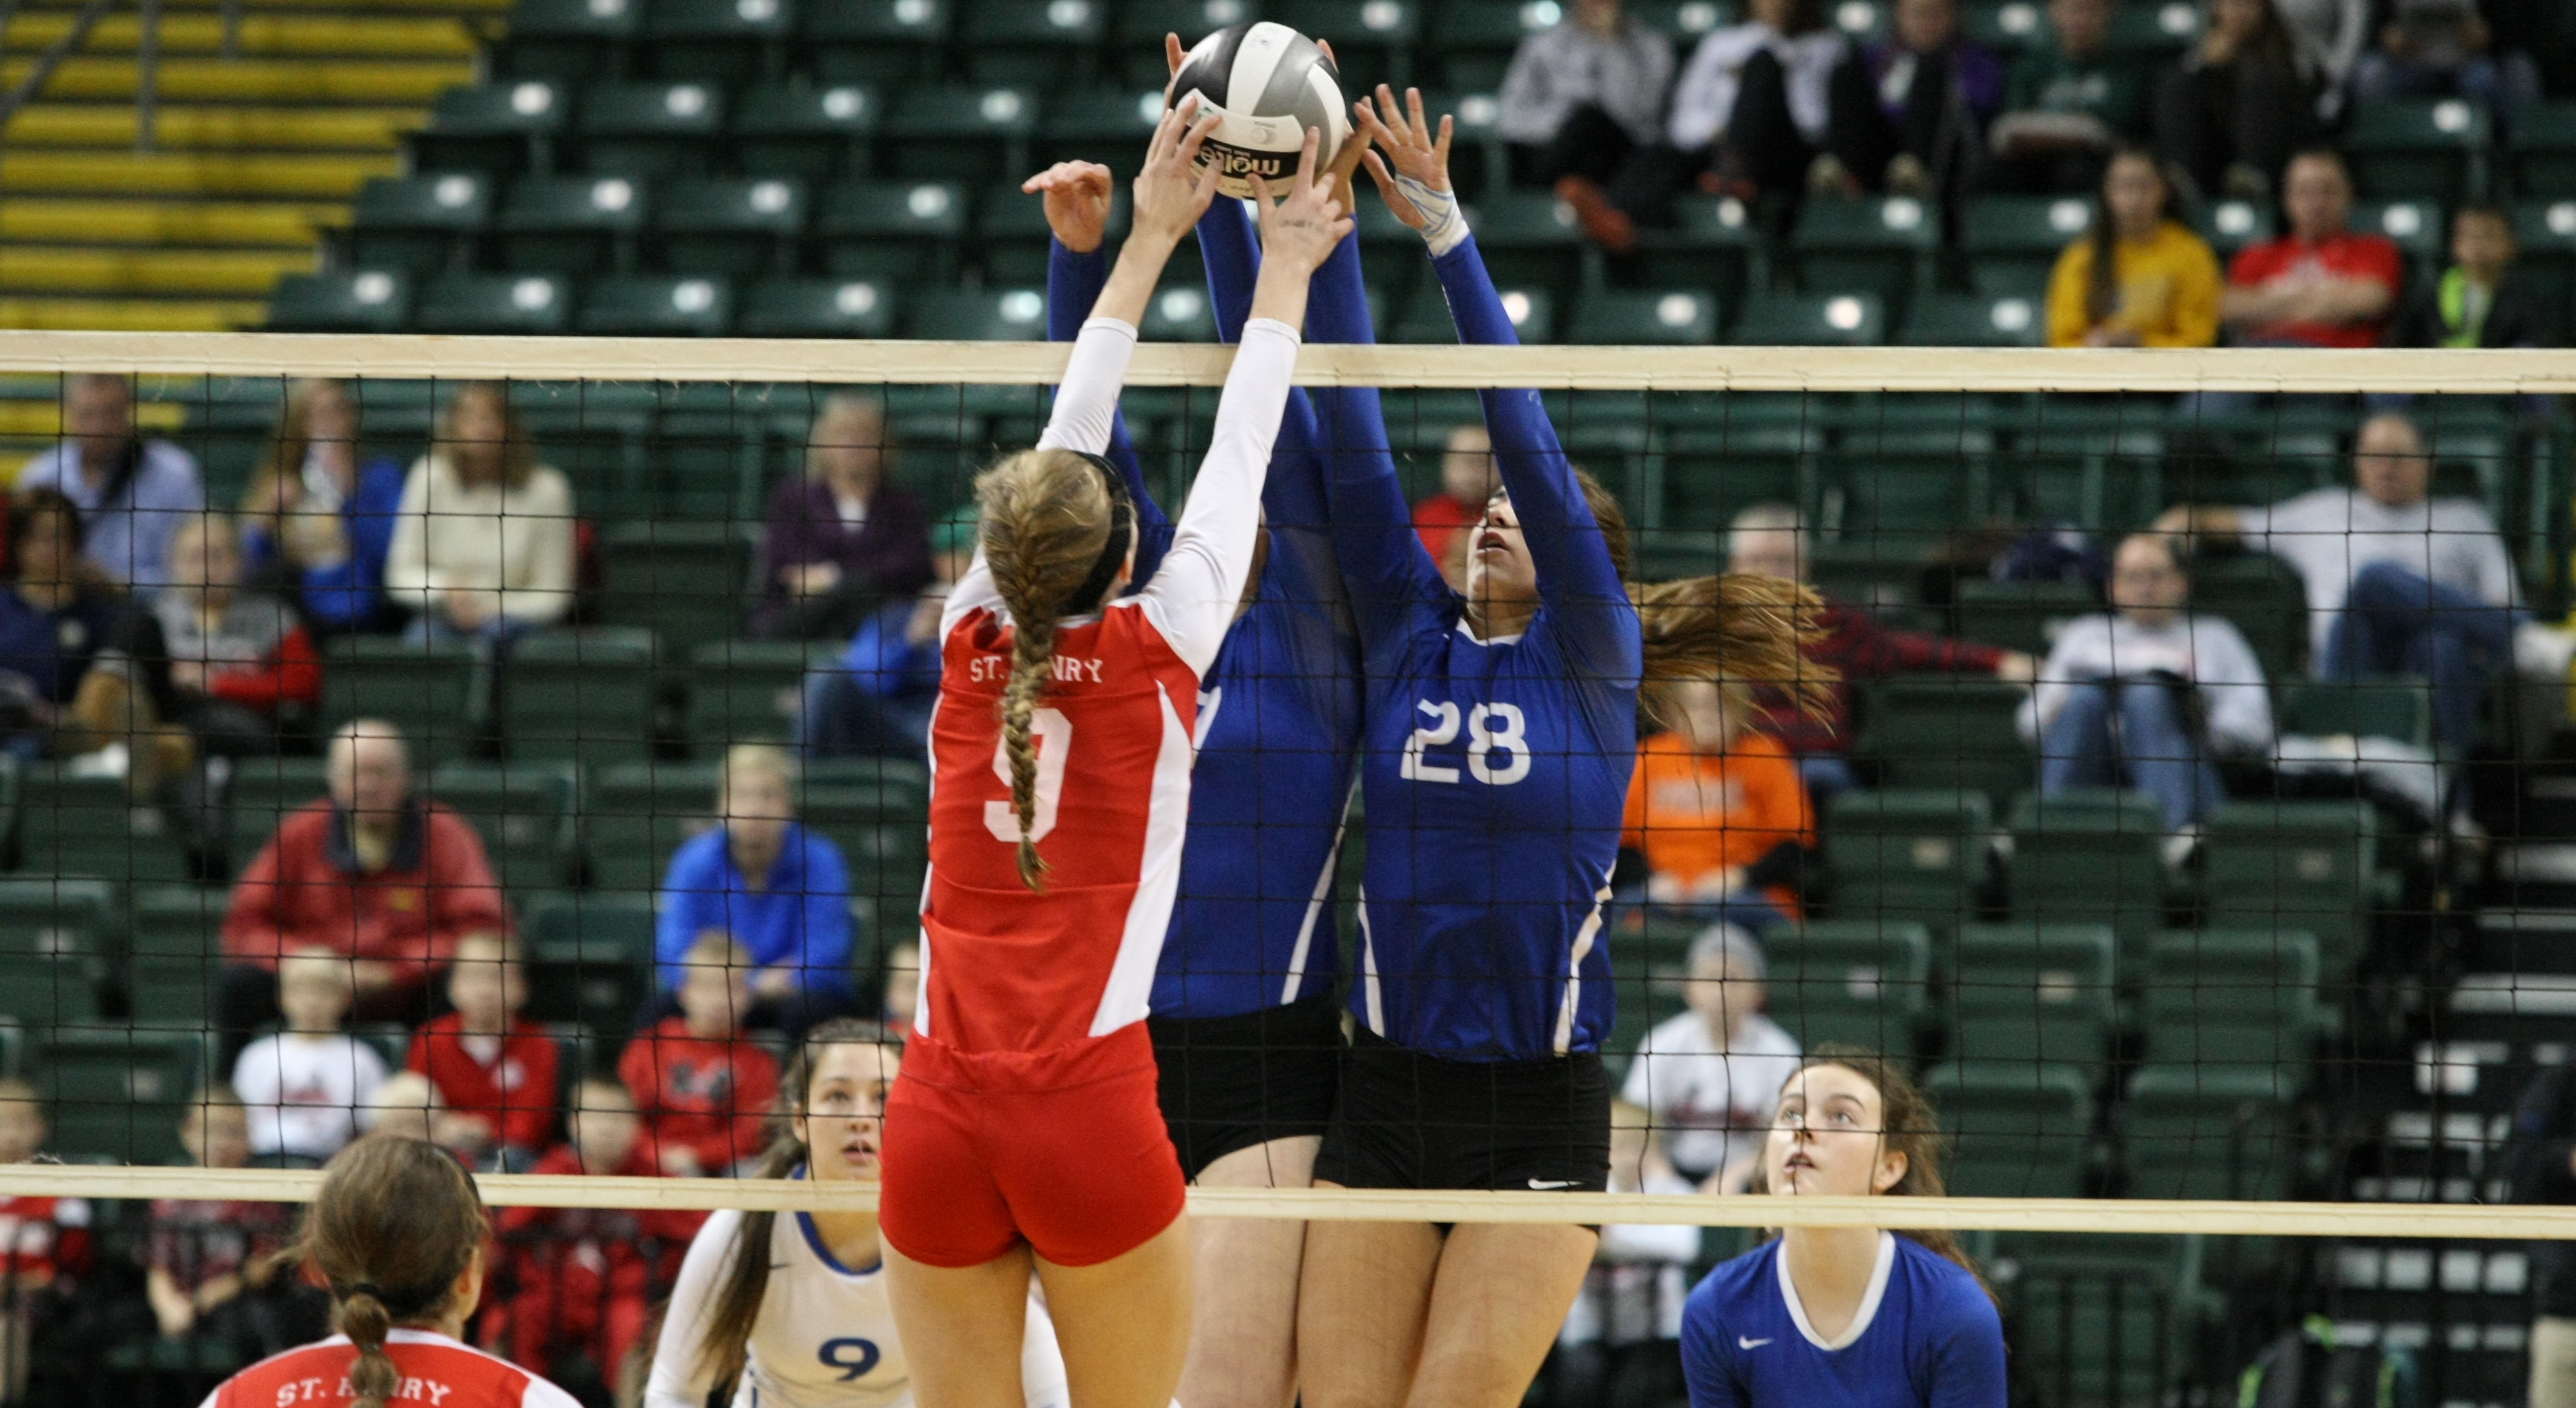 OHSAA > Sports & Tournaments > Volleyball > 2016 OHSAA Volleyball ...